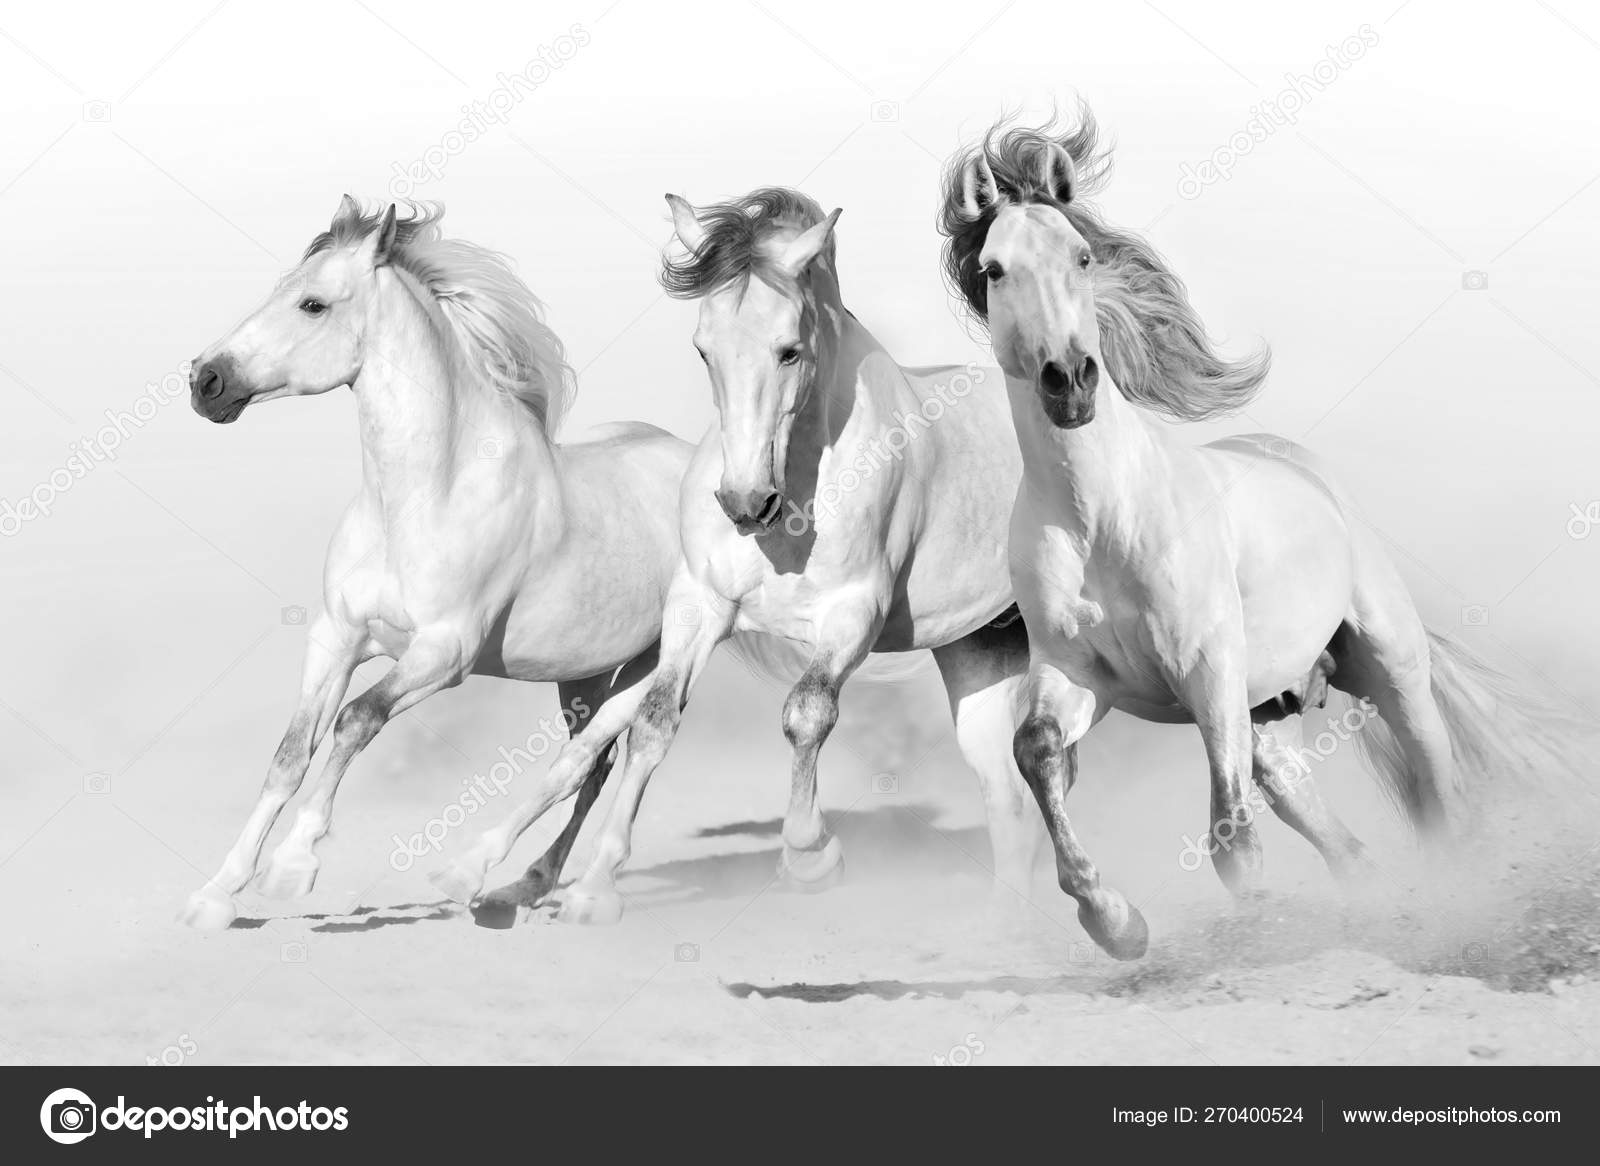 Three White Horse Run Gallop Desert Dust Black White Stock Photo C Kwadrat70 270400524